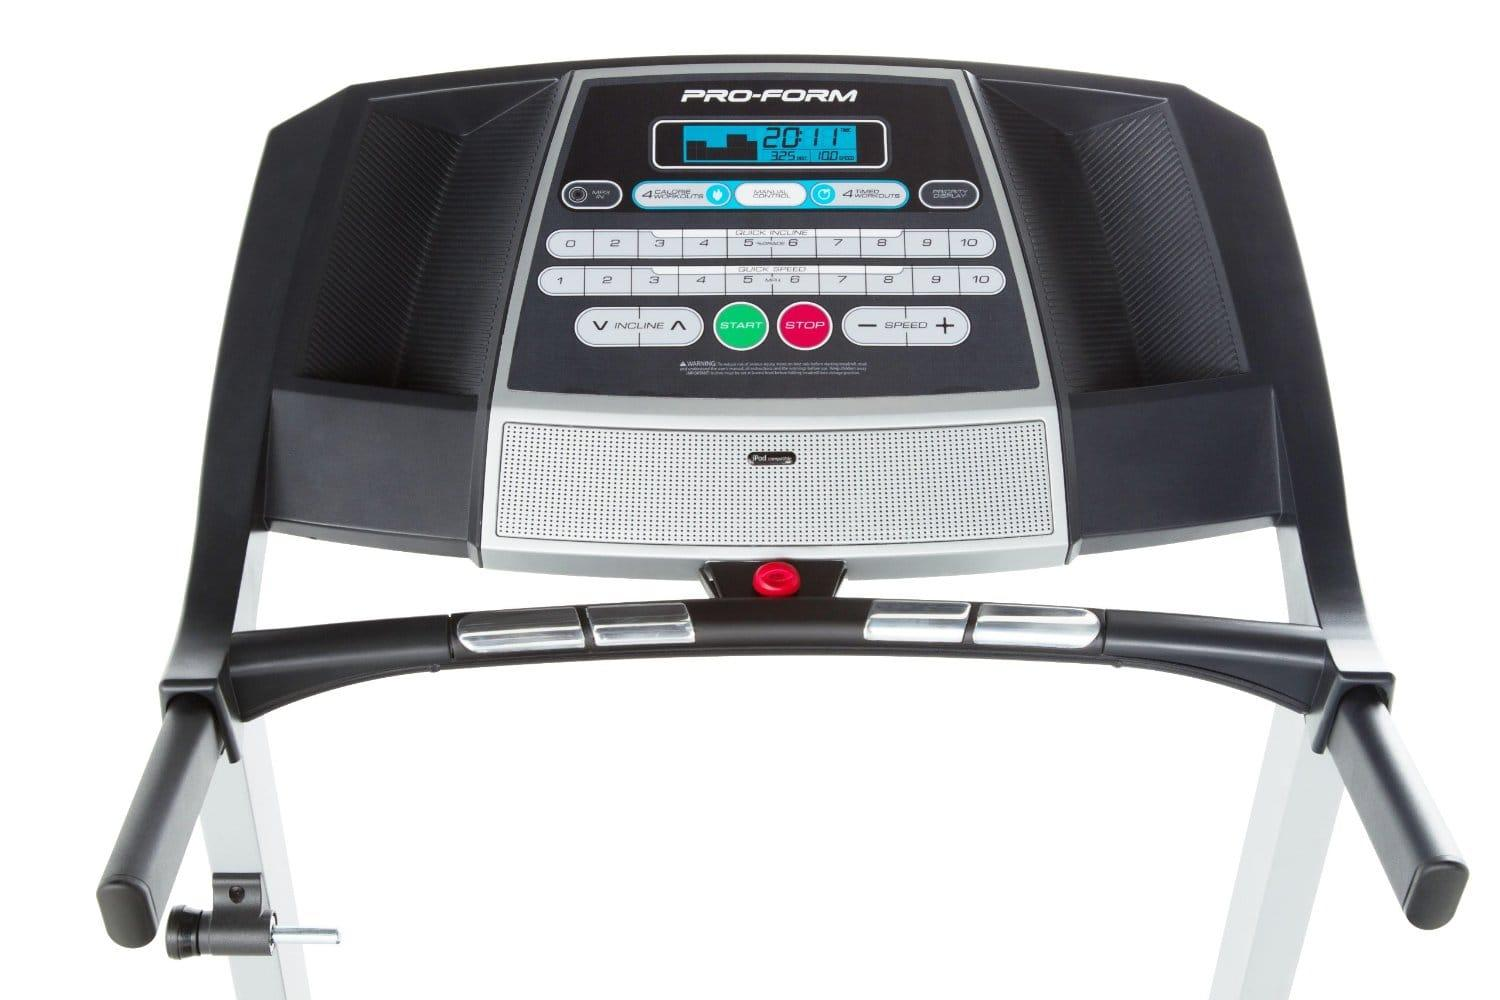 Proform 6 0rt Review 2018 Treadmillreviews Net